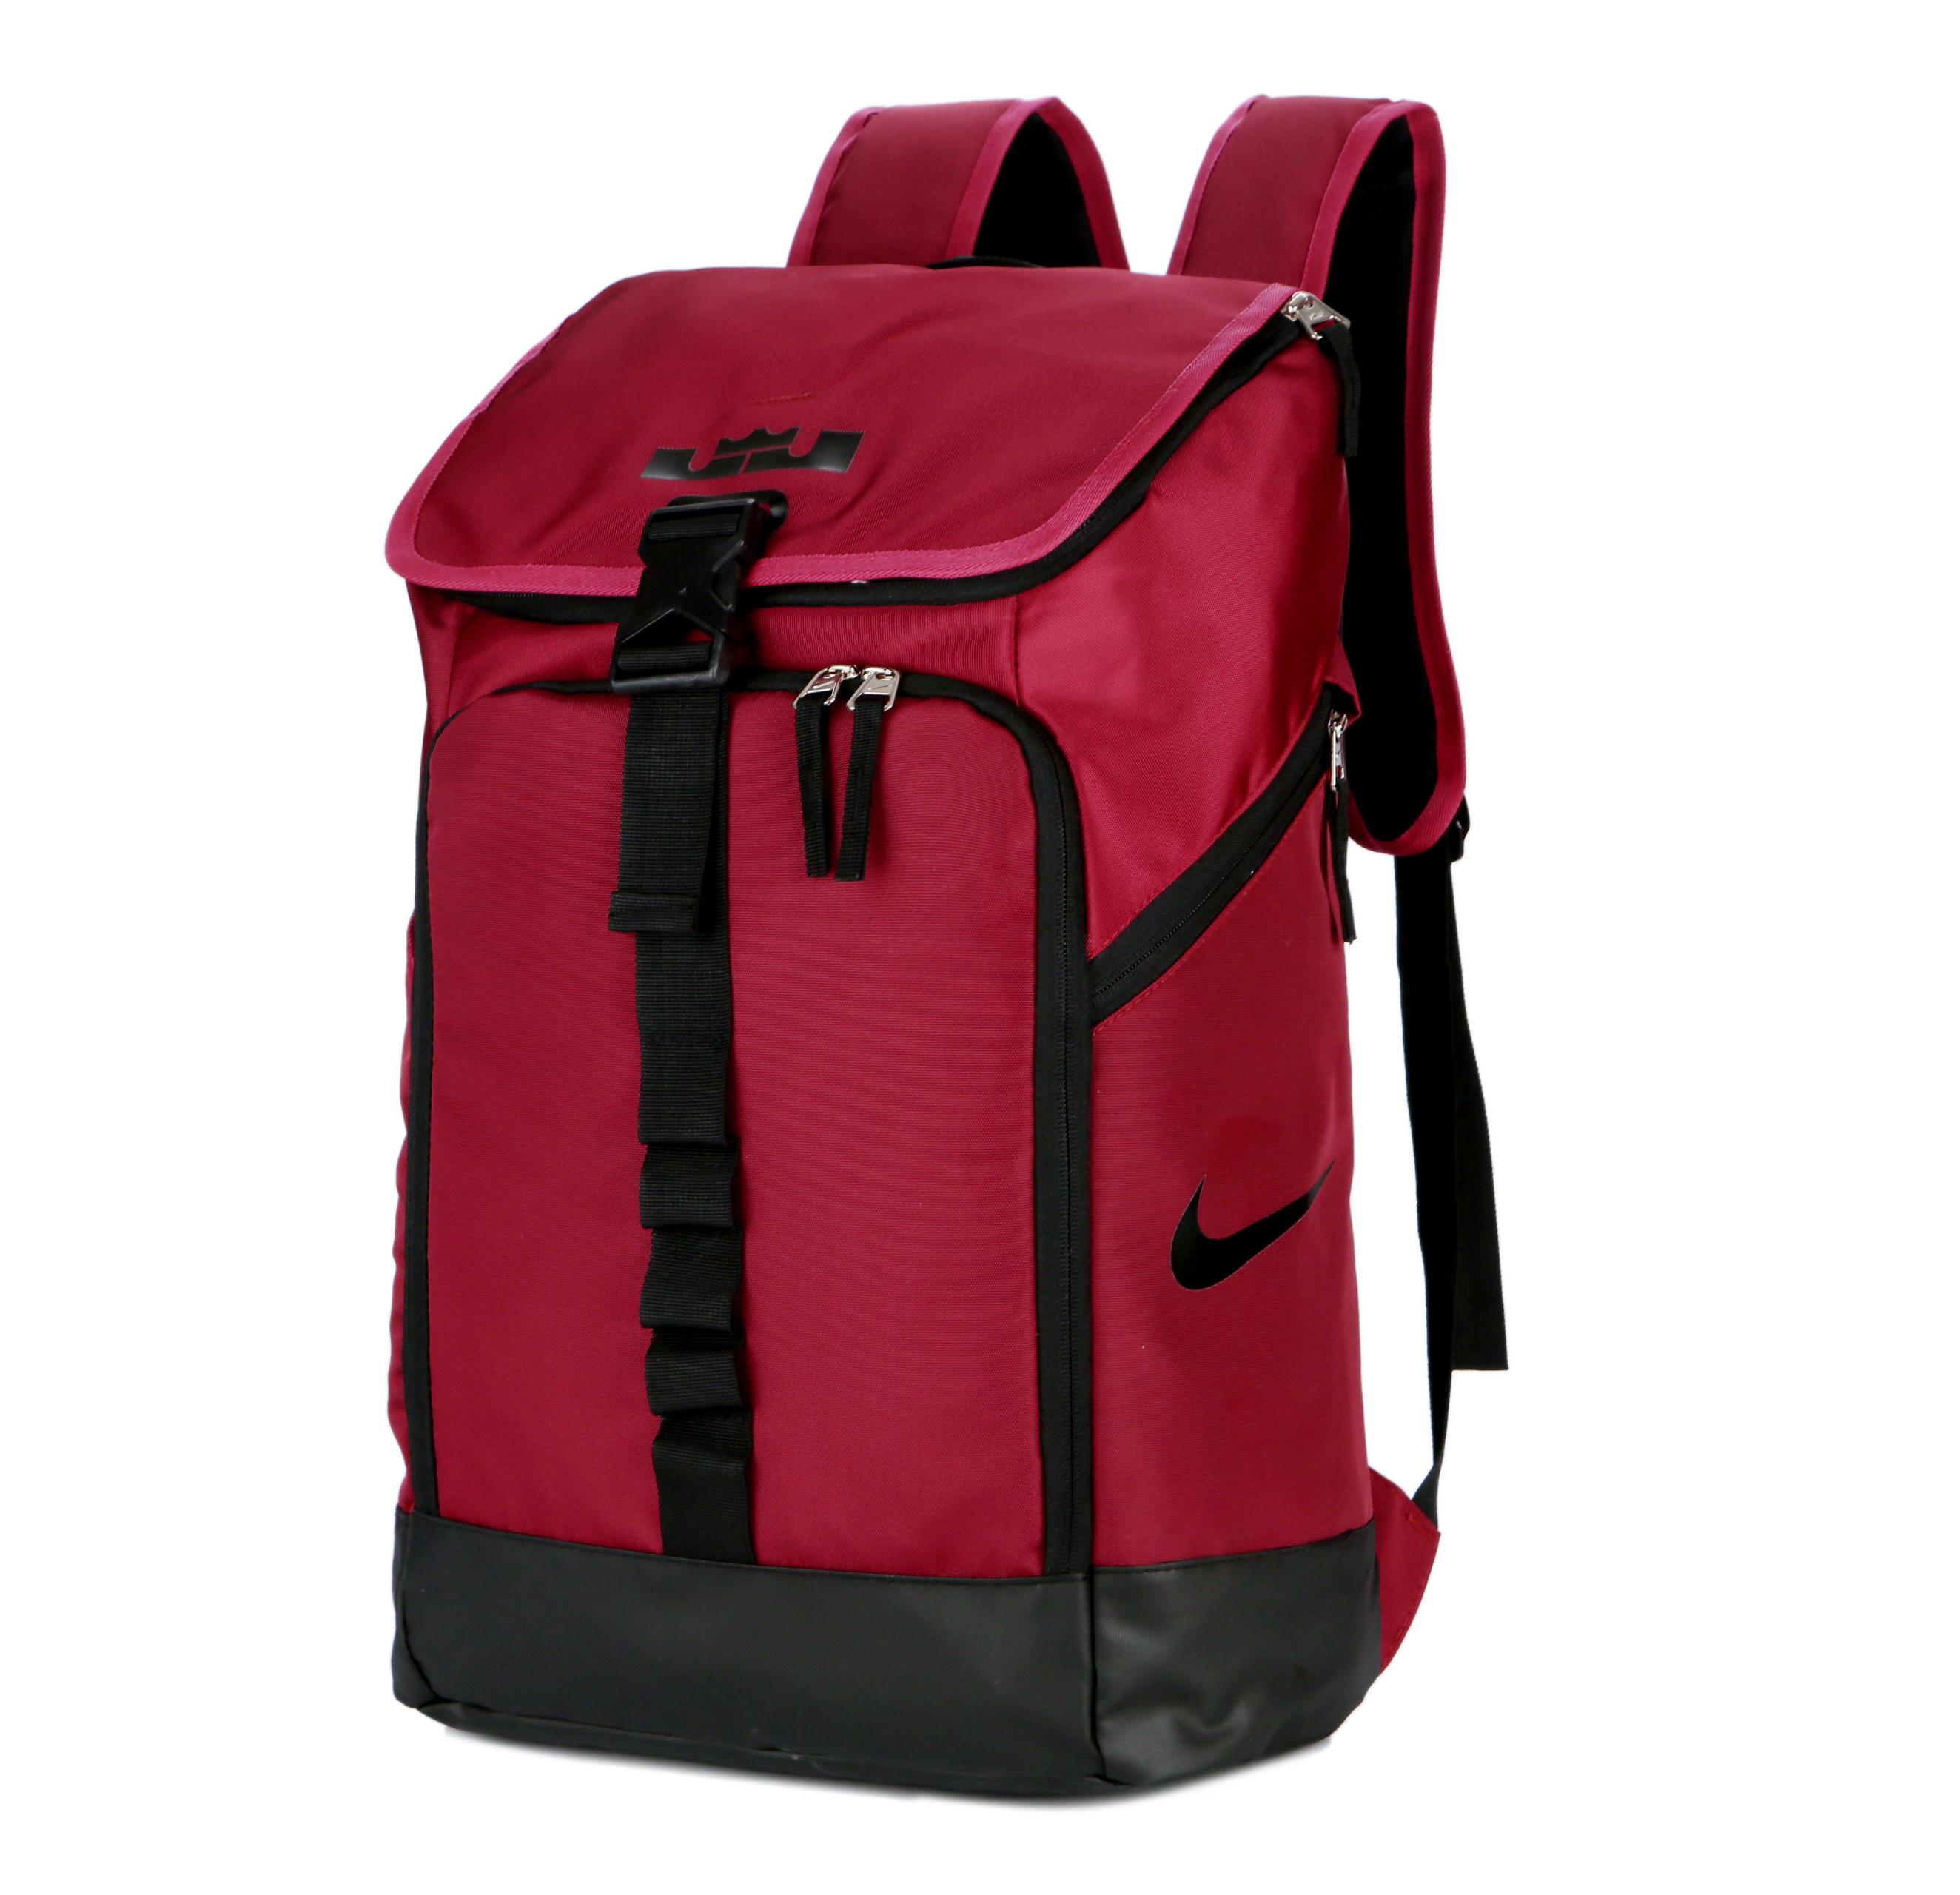 Nike LeBron Backpack Wined Red Black